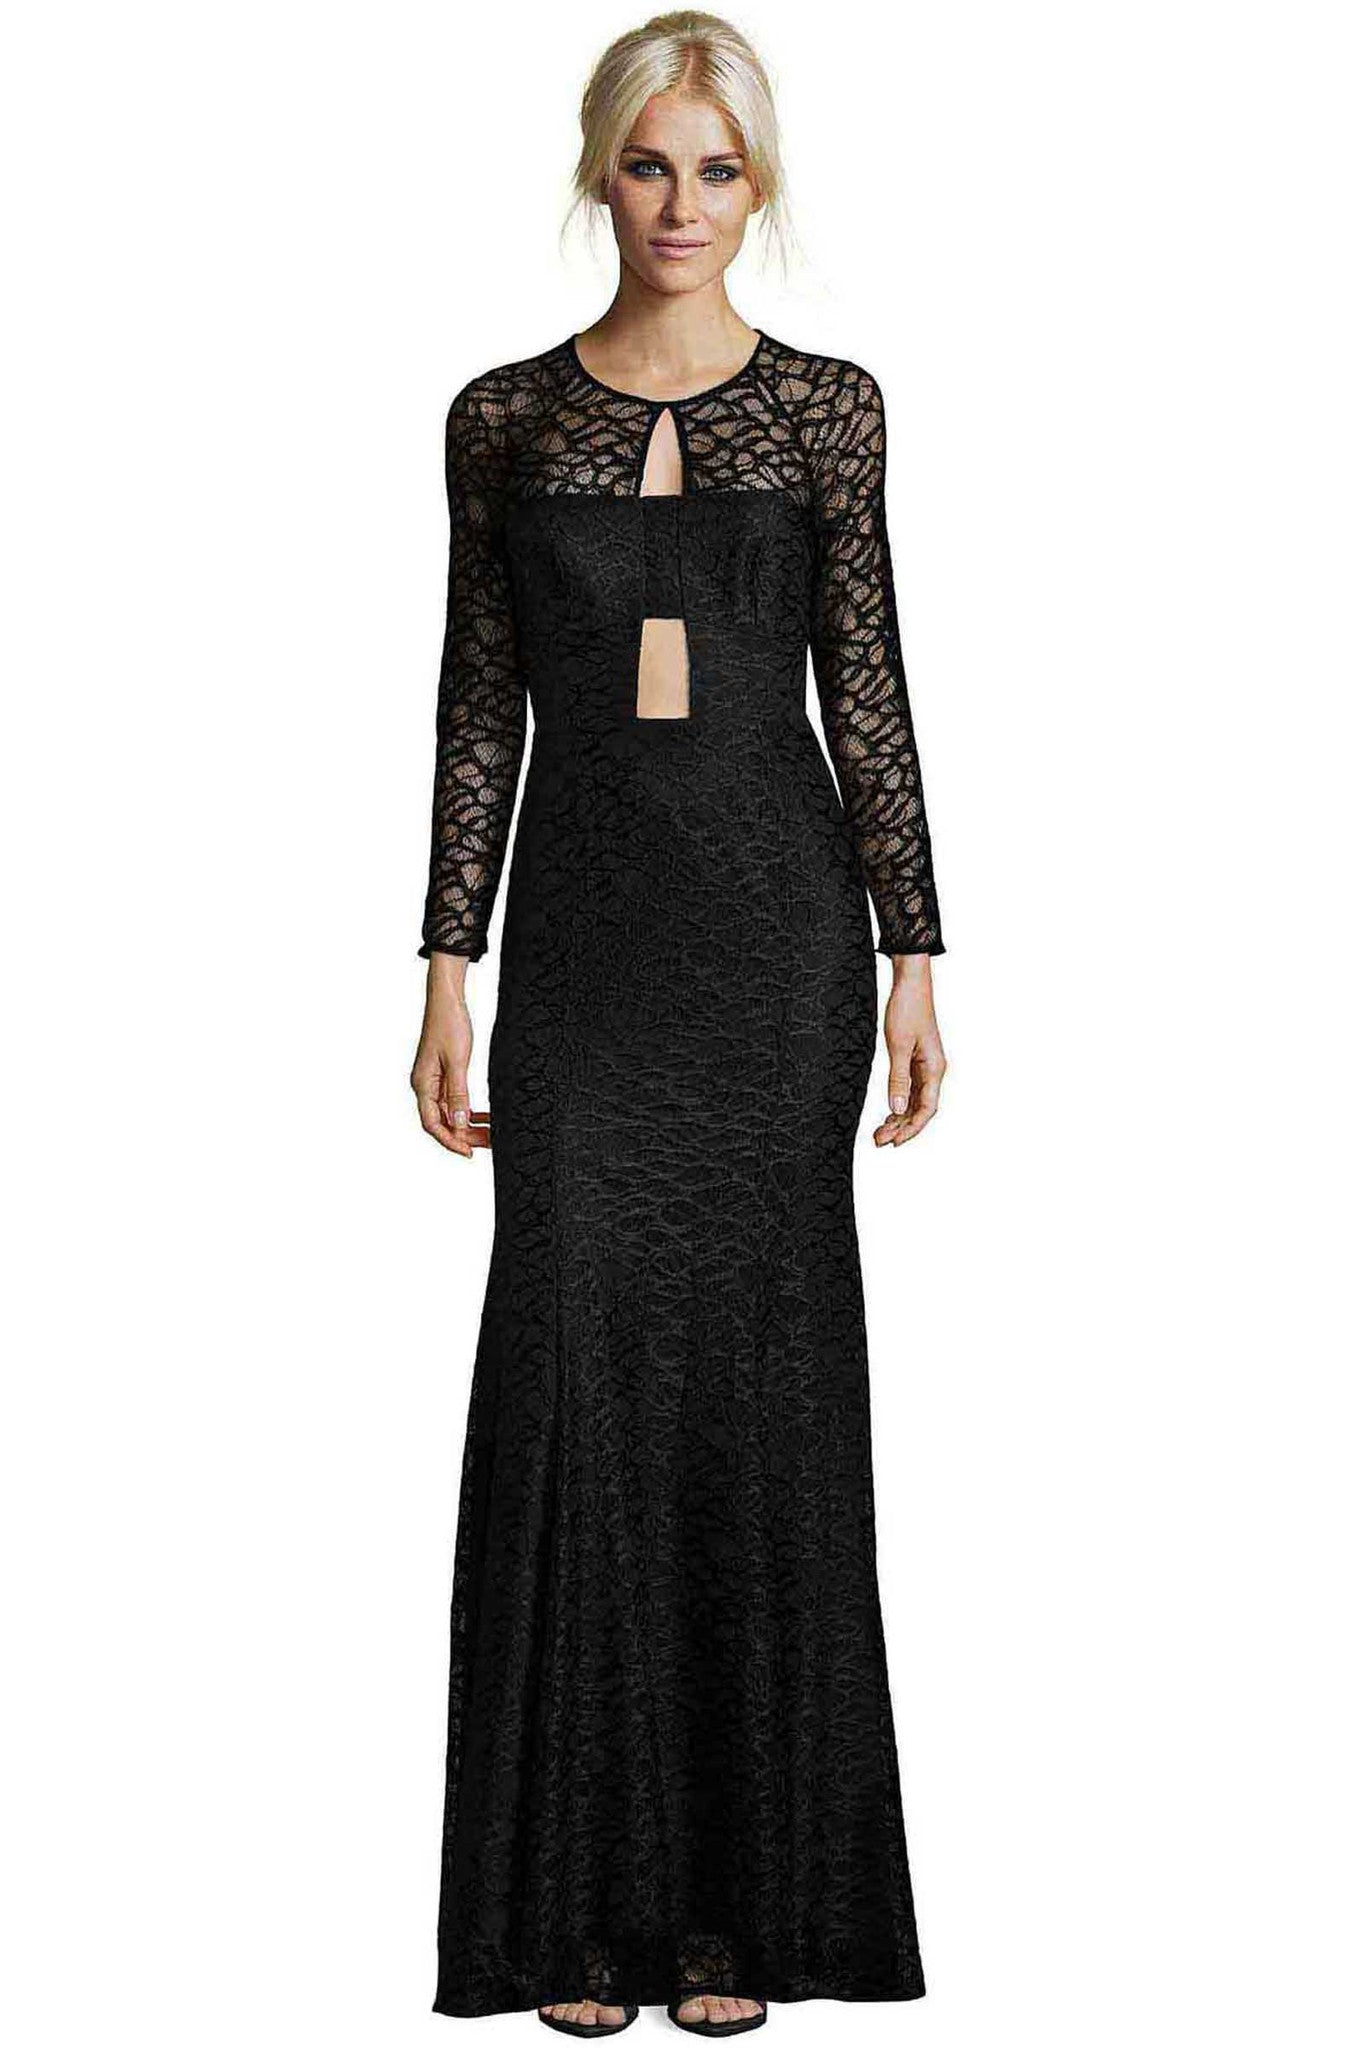 Jay Godfrey Black Lace Cut-Out Gown - Front View